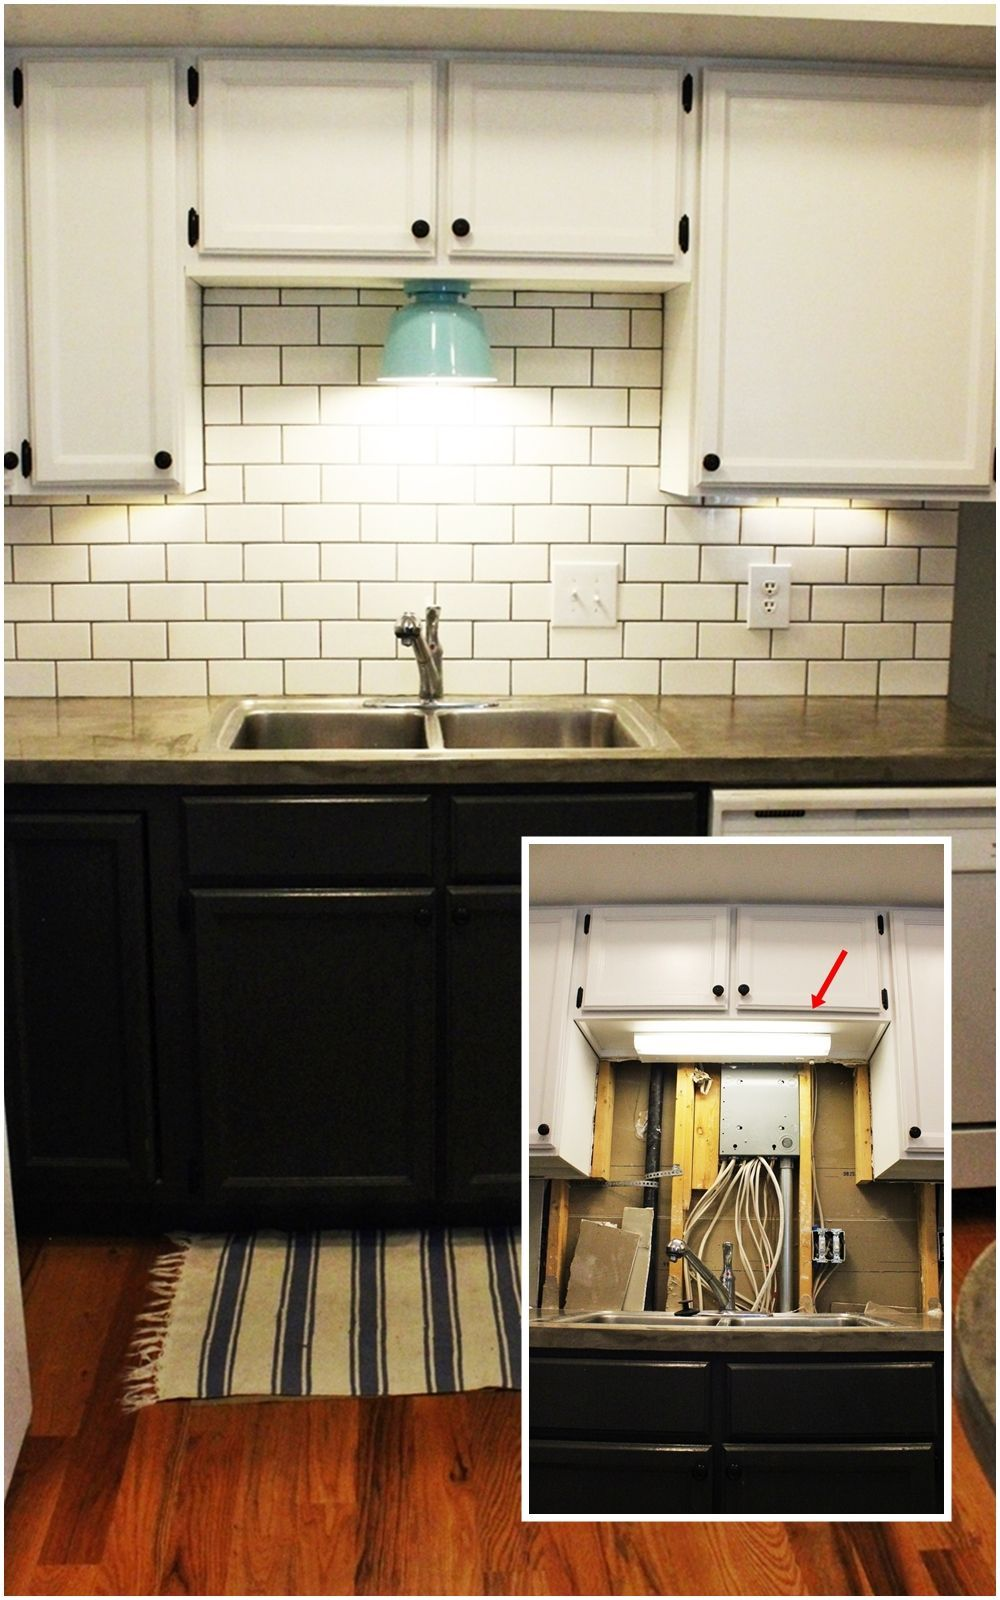 Diy Kitchen Lighting Upgrade Led Under Cabinet Lights Above The Sink Light